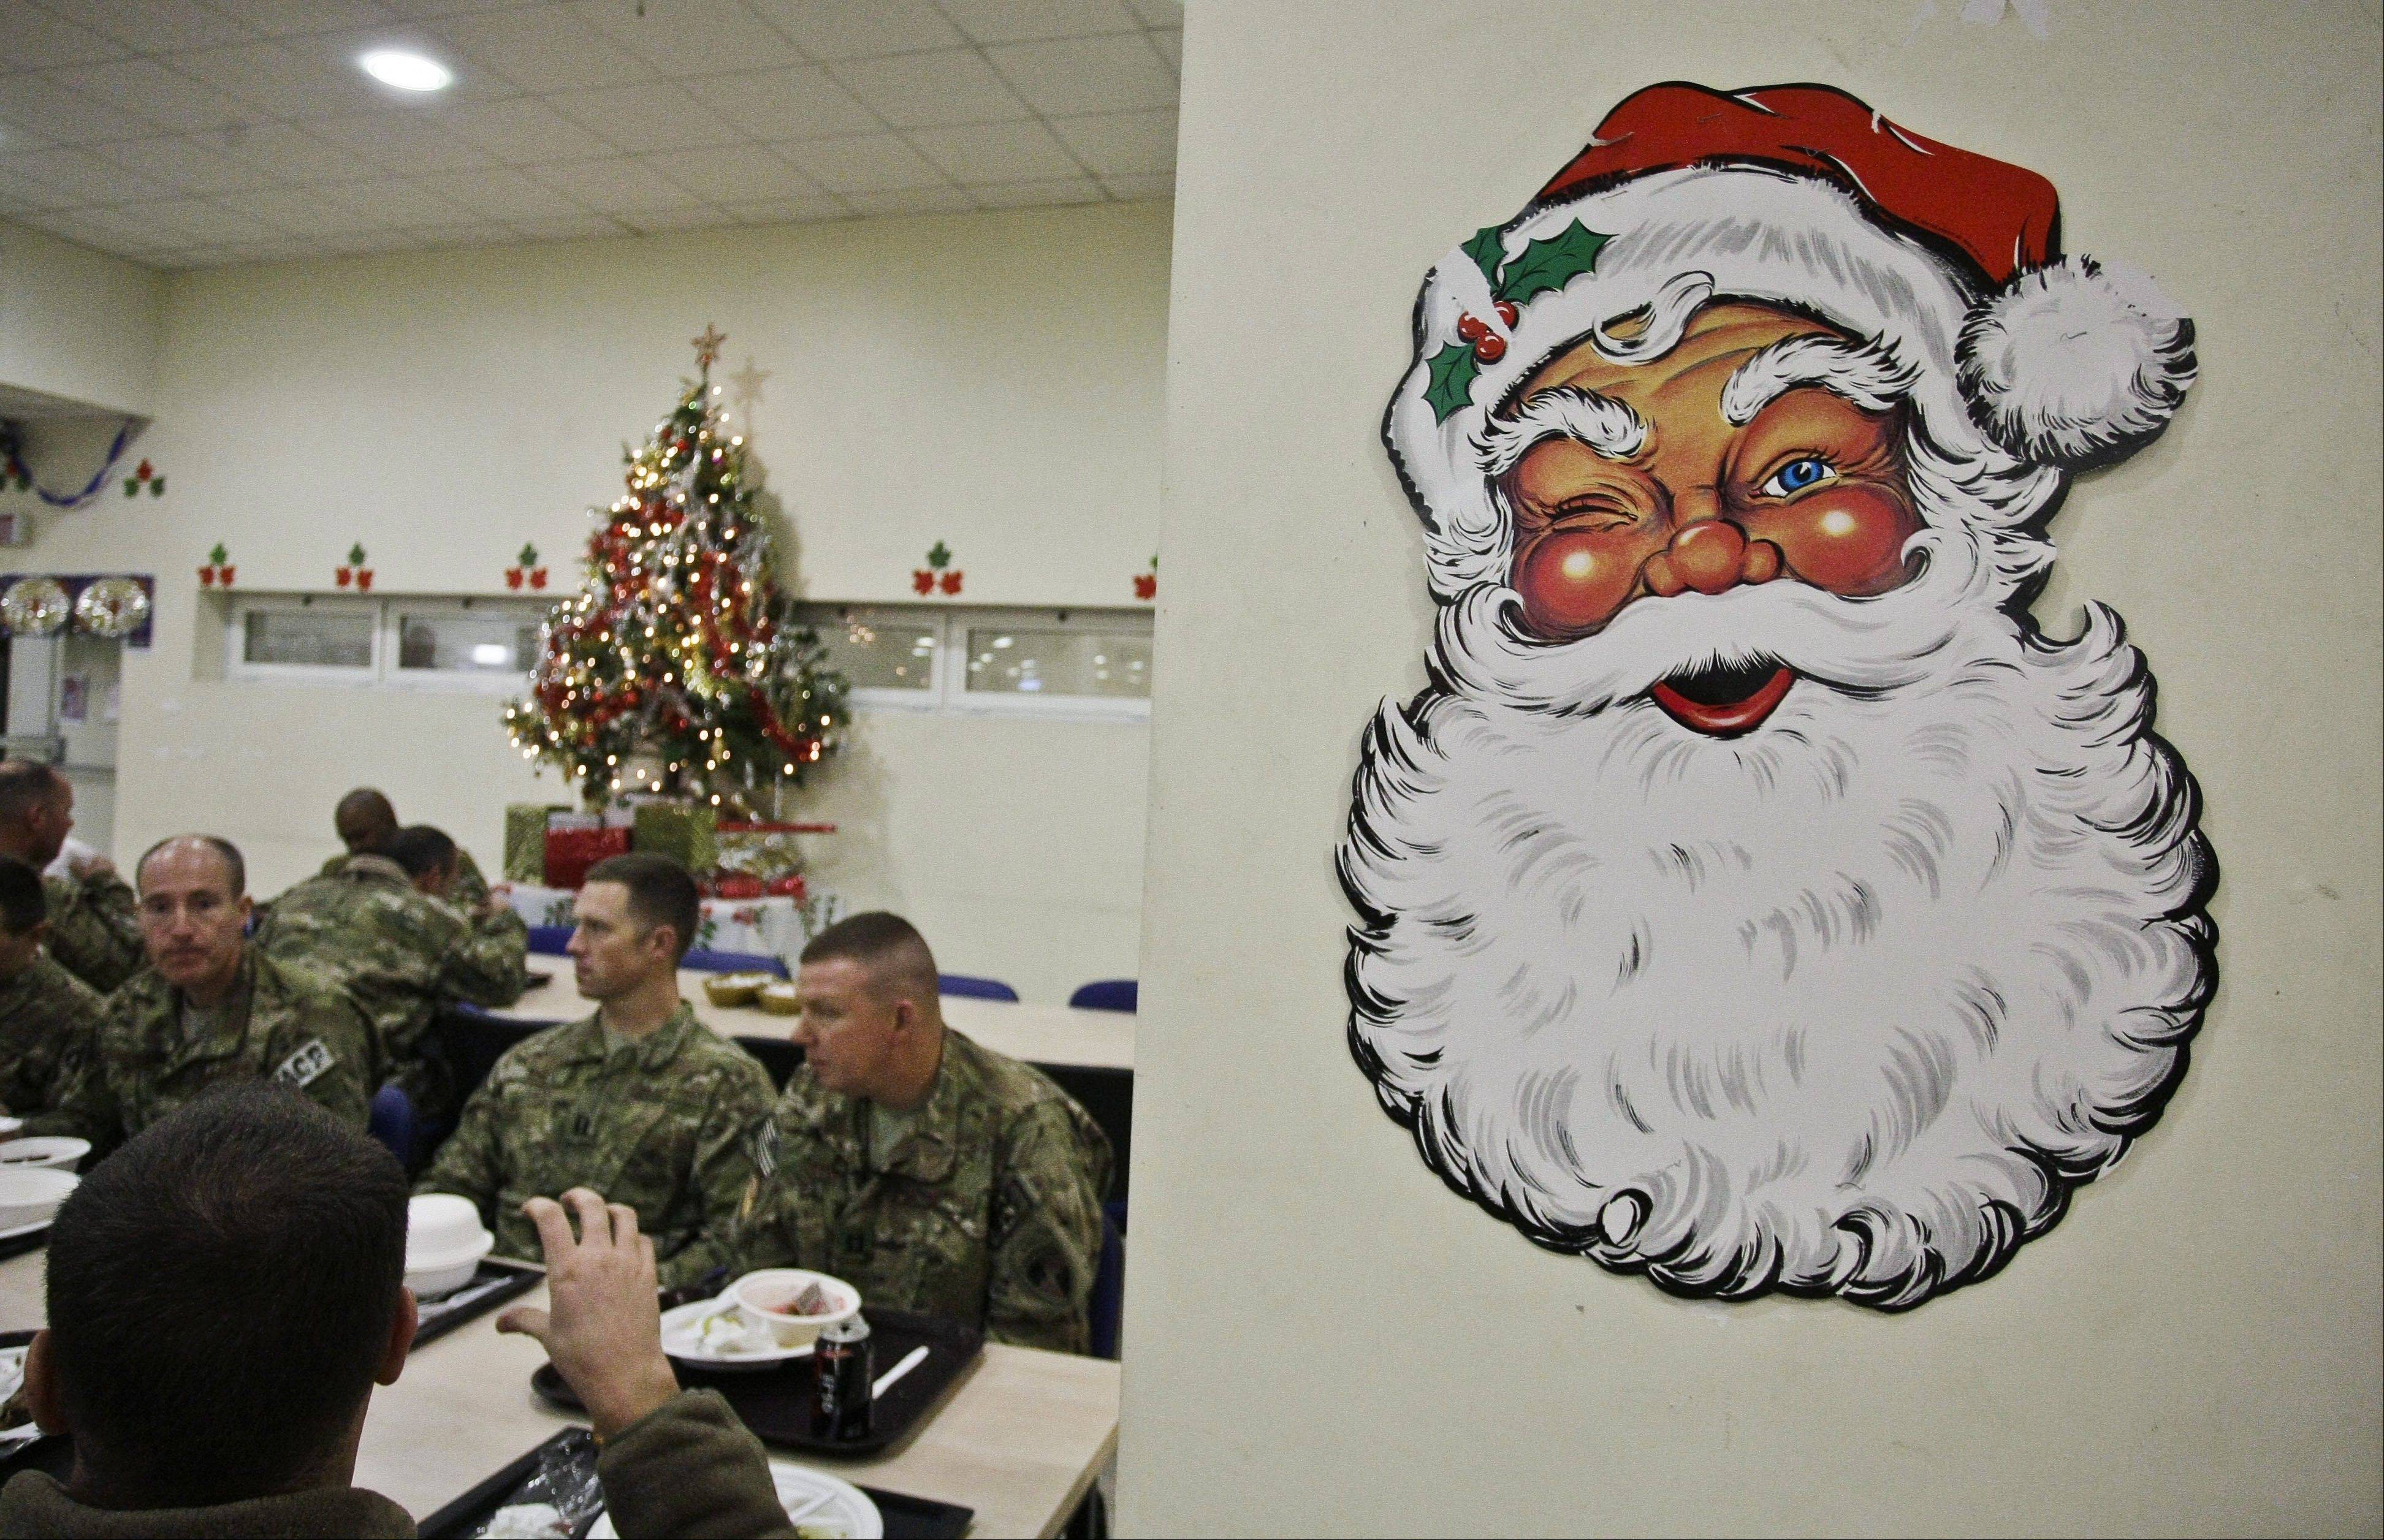 U.S. soldiers with the NATO- led International Security Assistance Force (ISAF) speak after eating dinner at a dinning hall on Christmas Eve at the U.S.-led coalition base in Kabul, Afghanistan, Monday, Dec. 24, 2014.